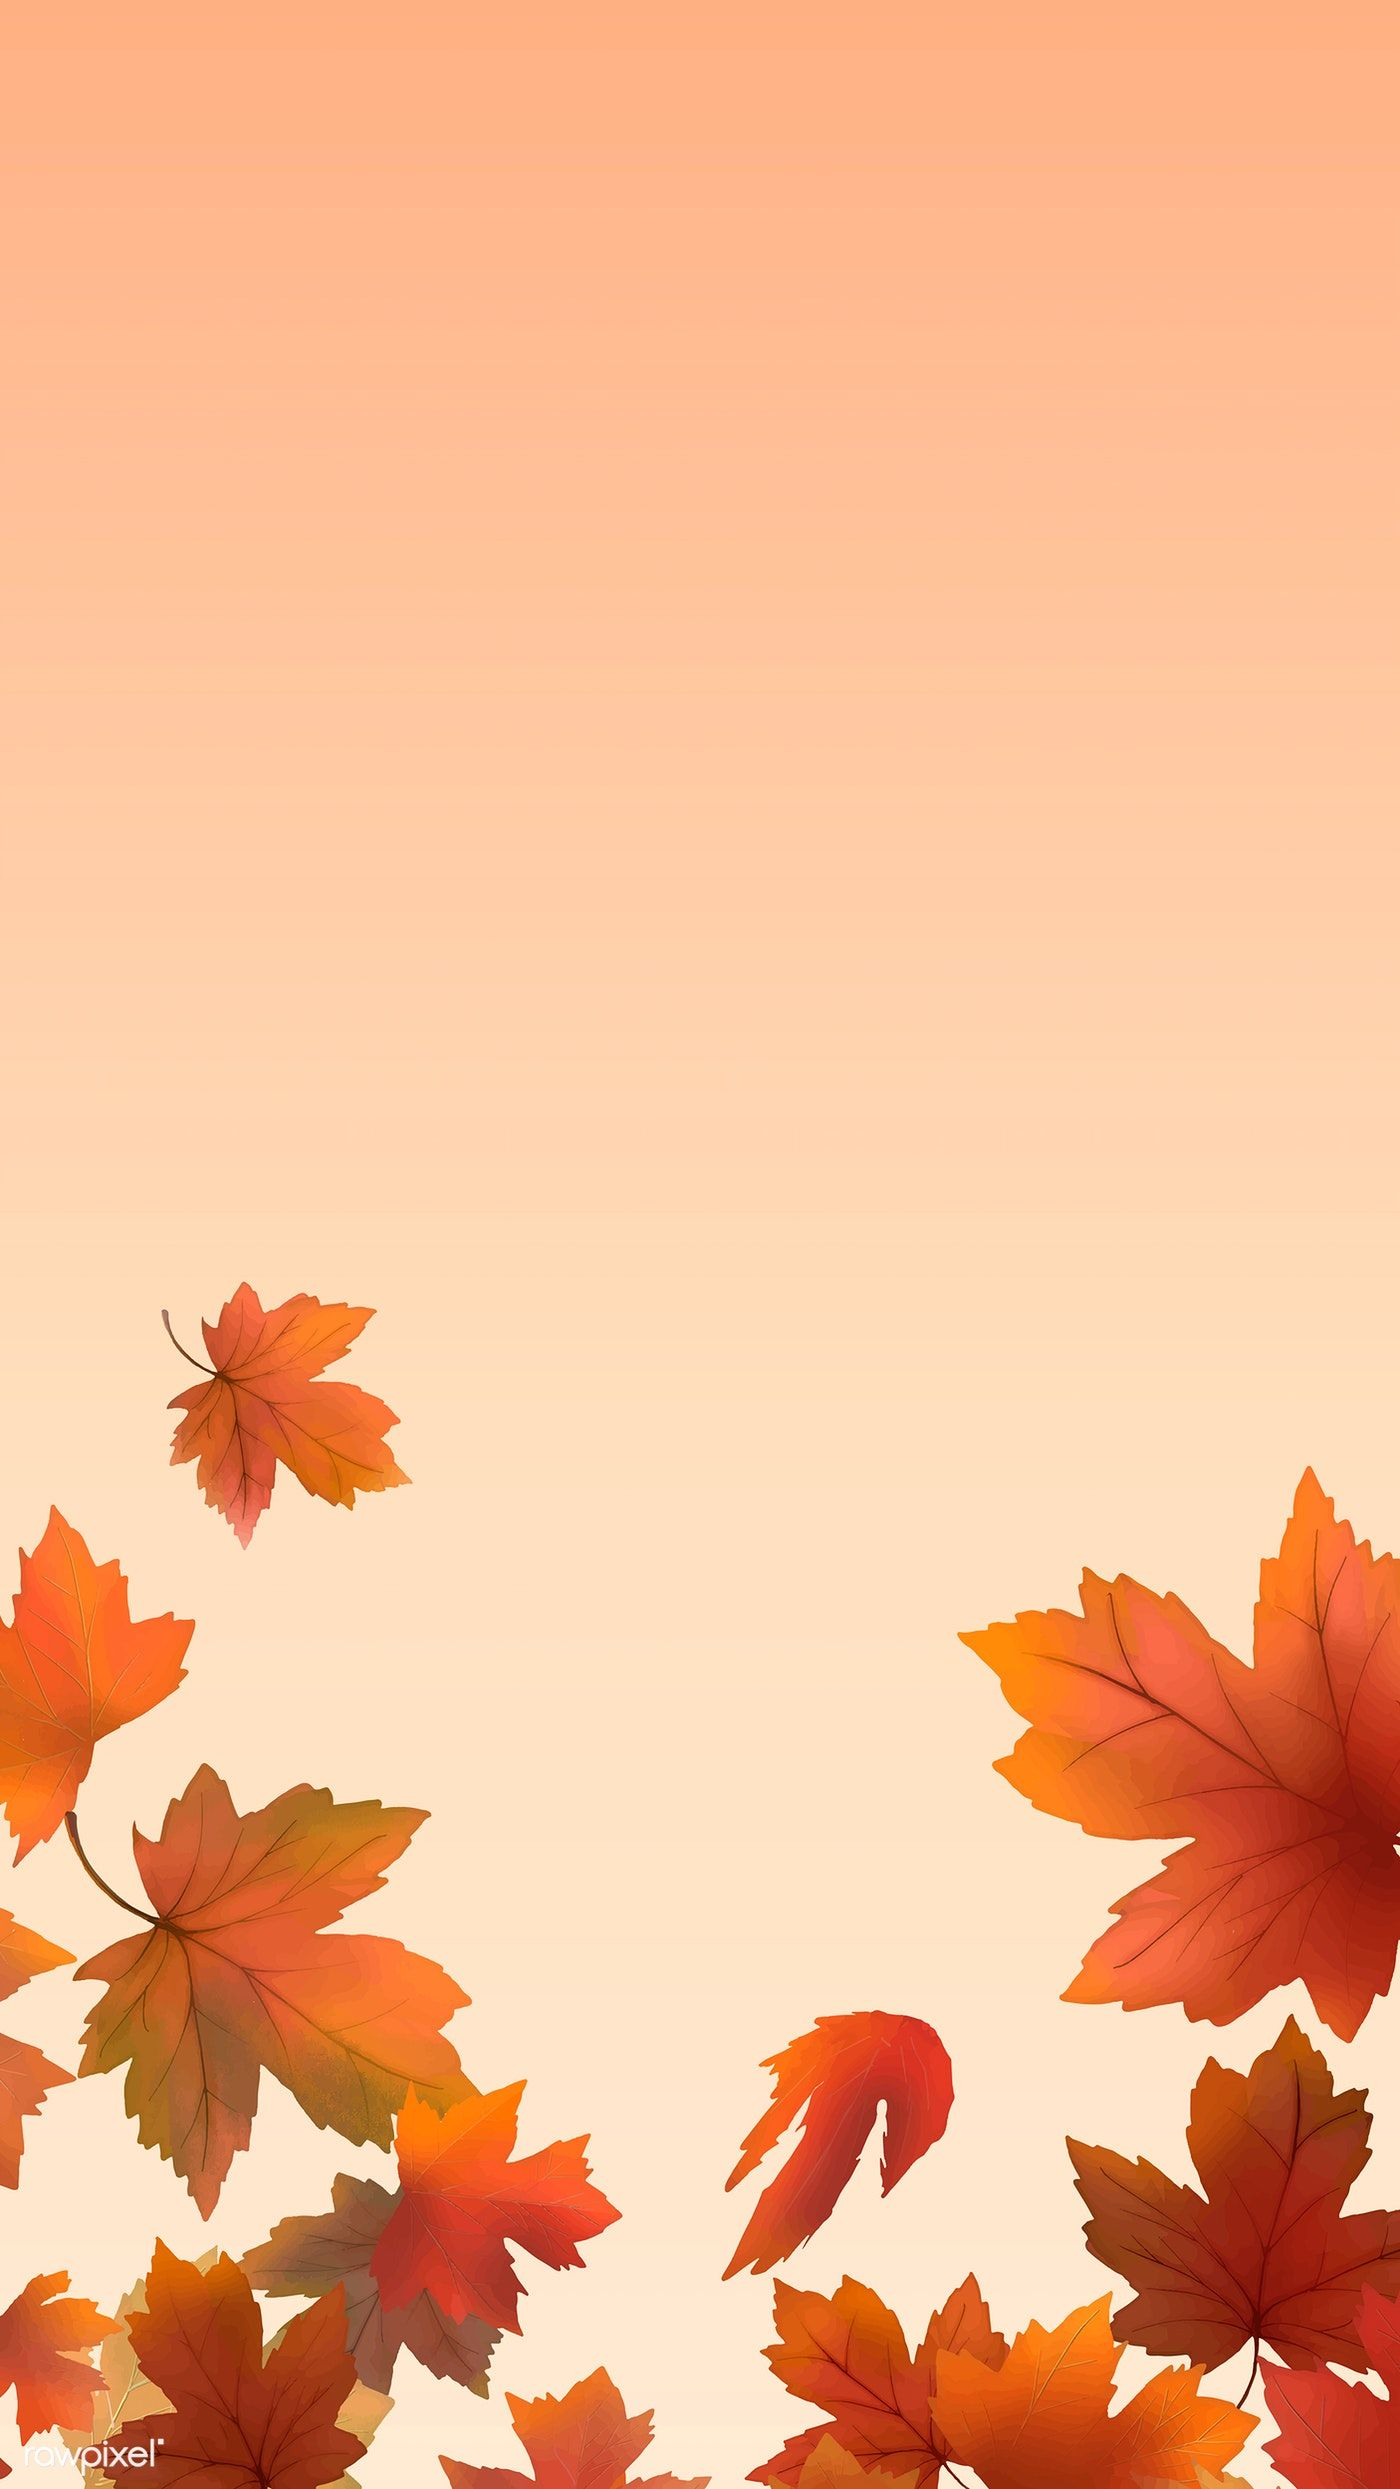 41 Free Fall Wallpapers And Backgrounds For All Your Devices Autumn Leaves Wallpaper Free Fall Wallpaper Fall Wallpaper